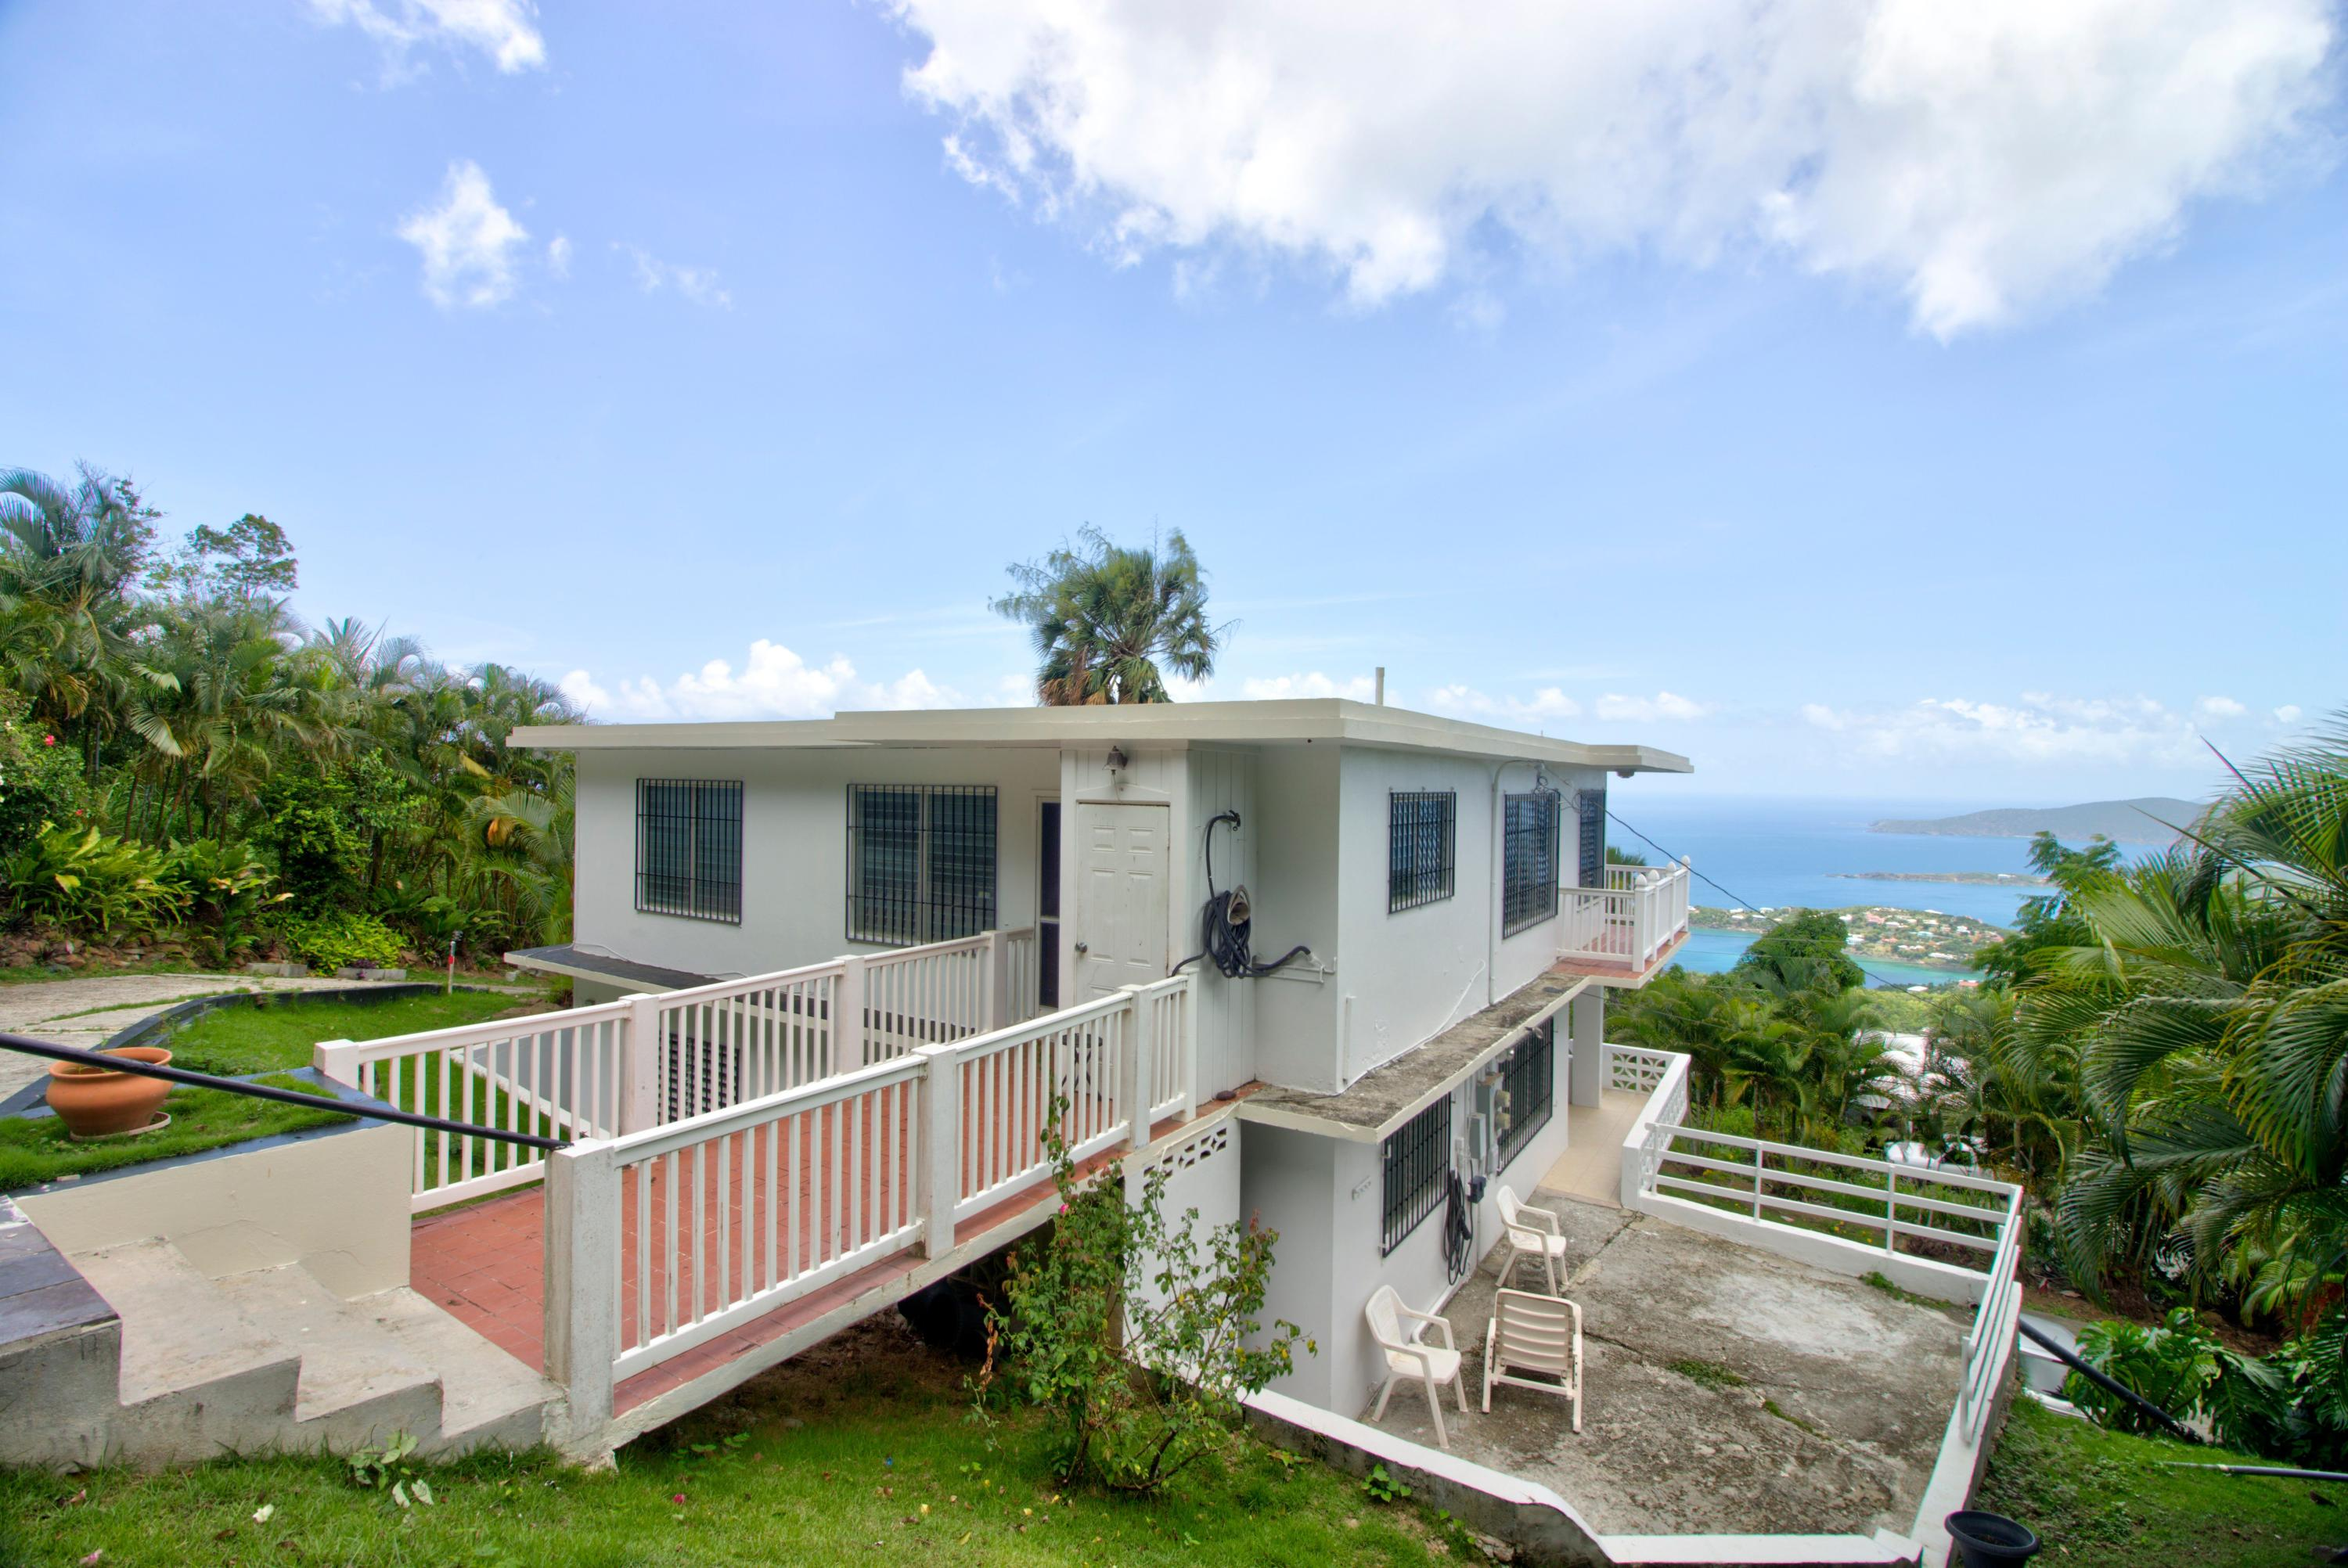 RE/MAX real estate, US Virgin Islands, Dorothea, Back on Market  Residential  Dorothea LNS